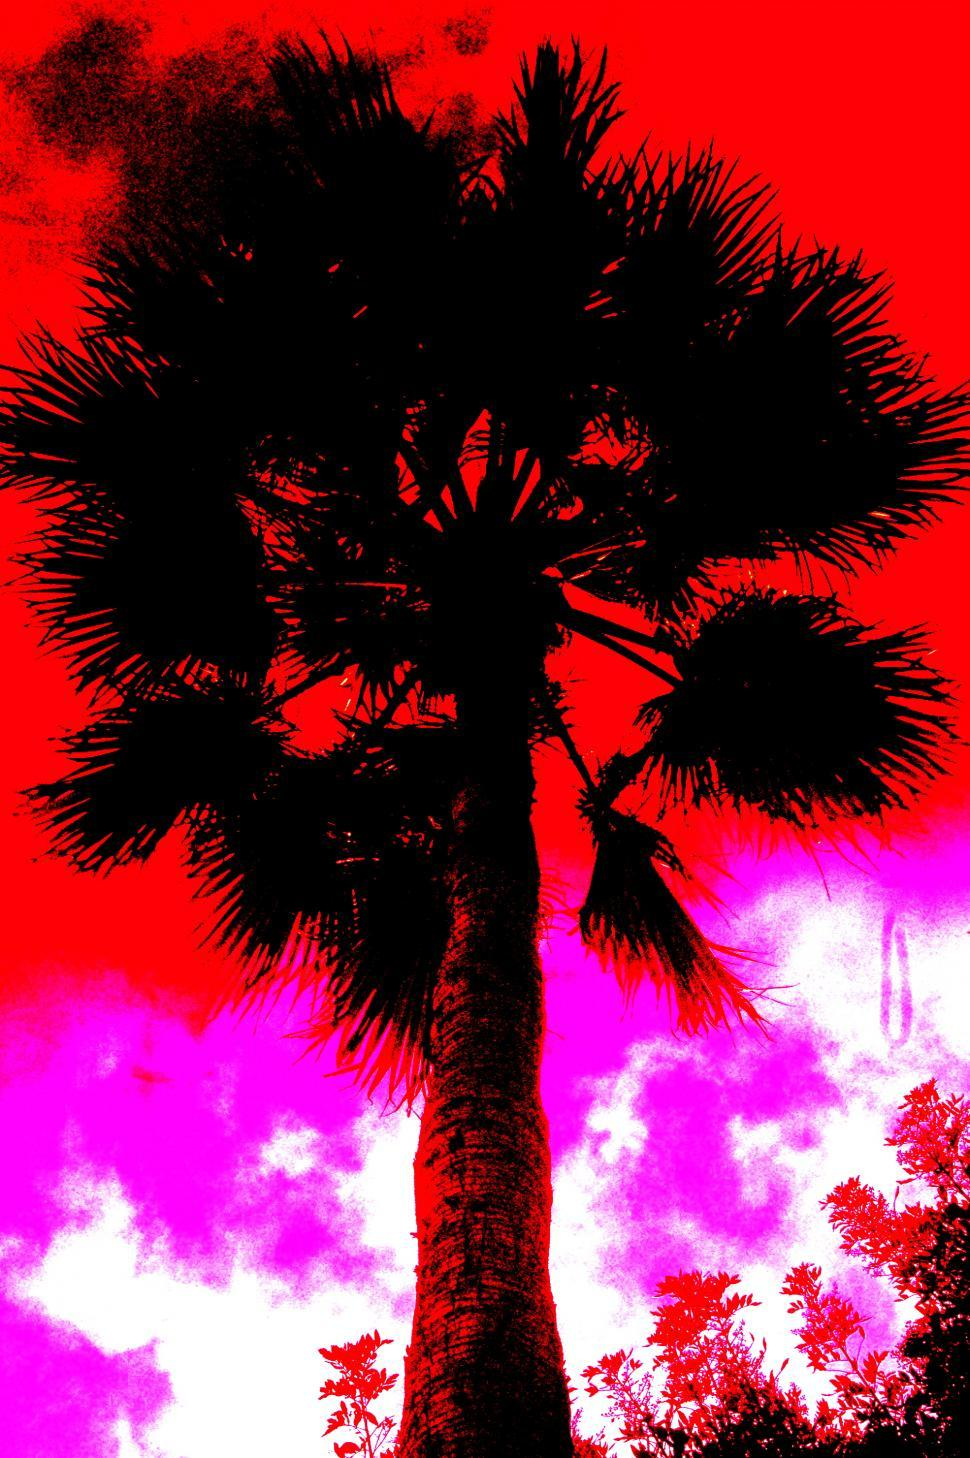 Download Free Stock HD Photo of Palm Tree in the Radiant Red Sky Online